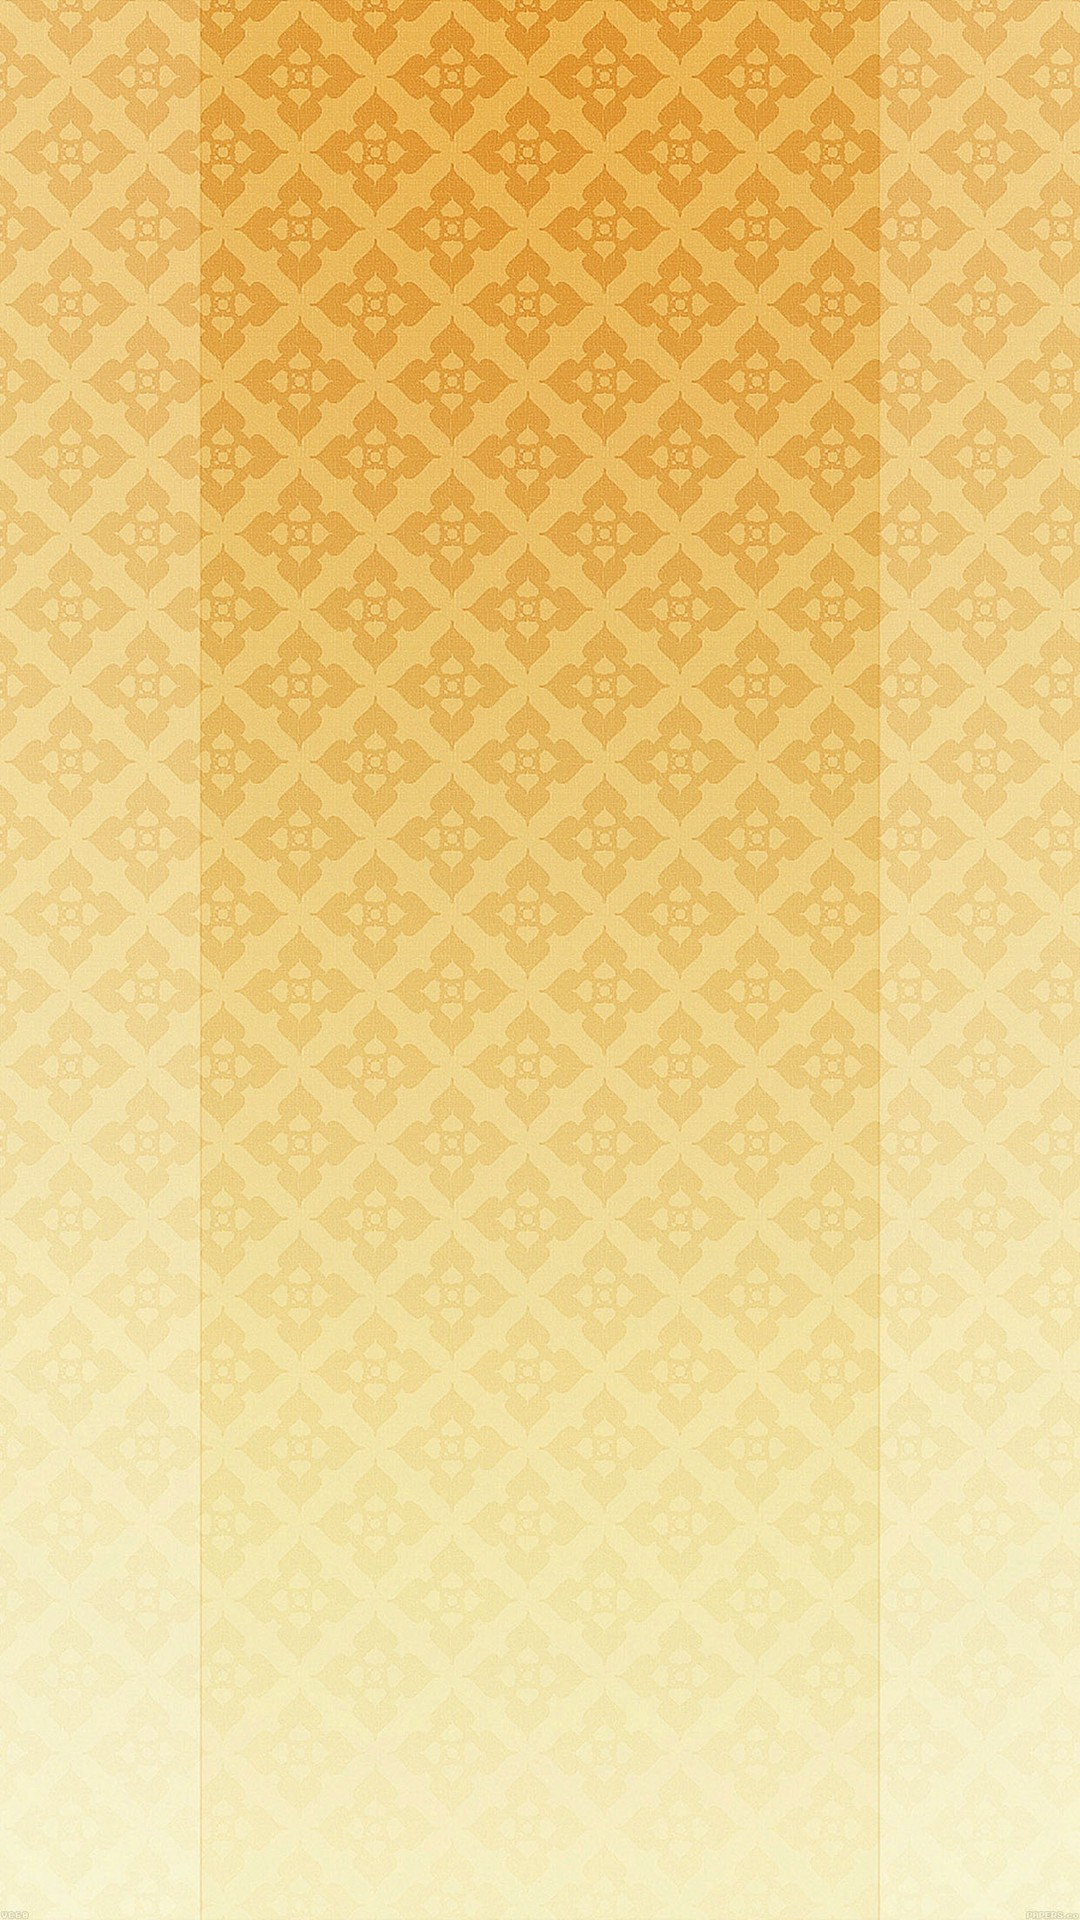 pattern gold plant wallpapersc iphone6s